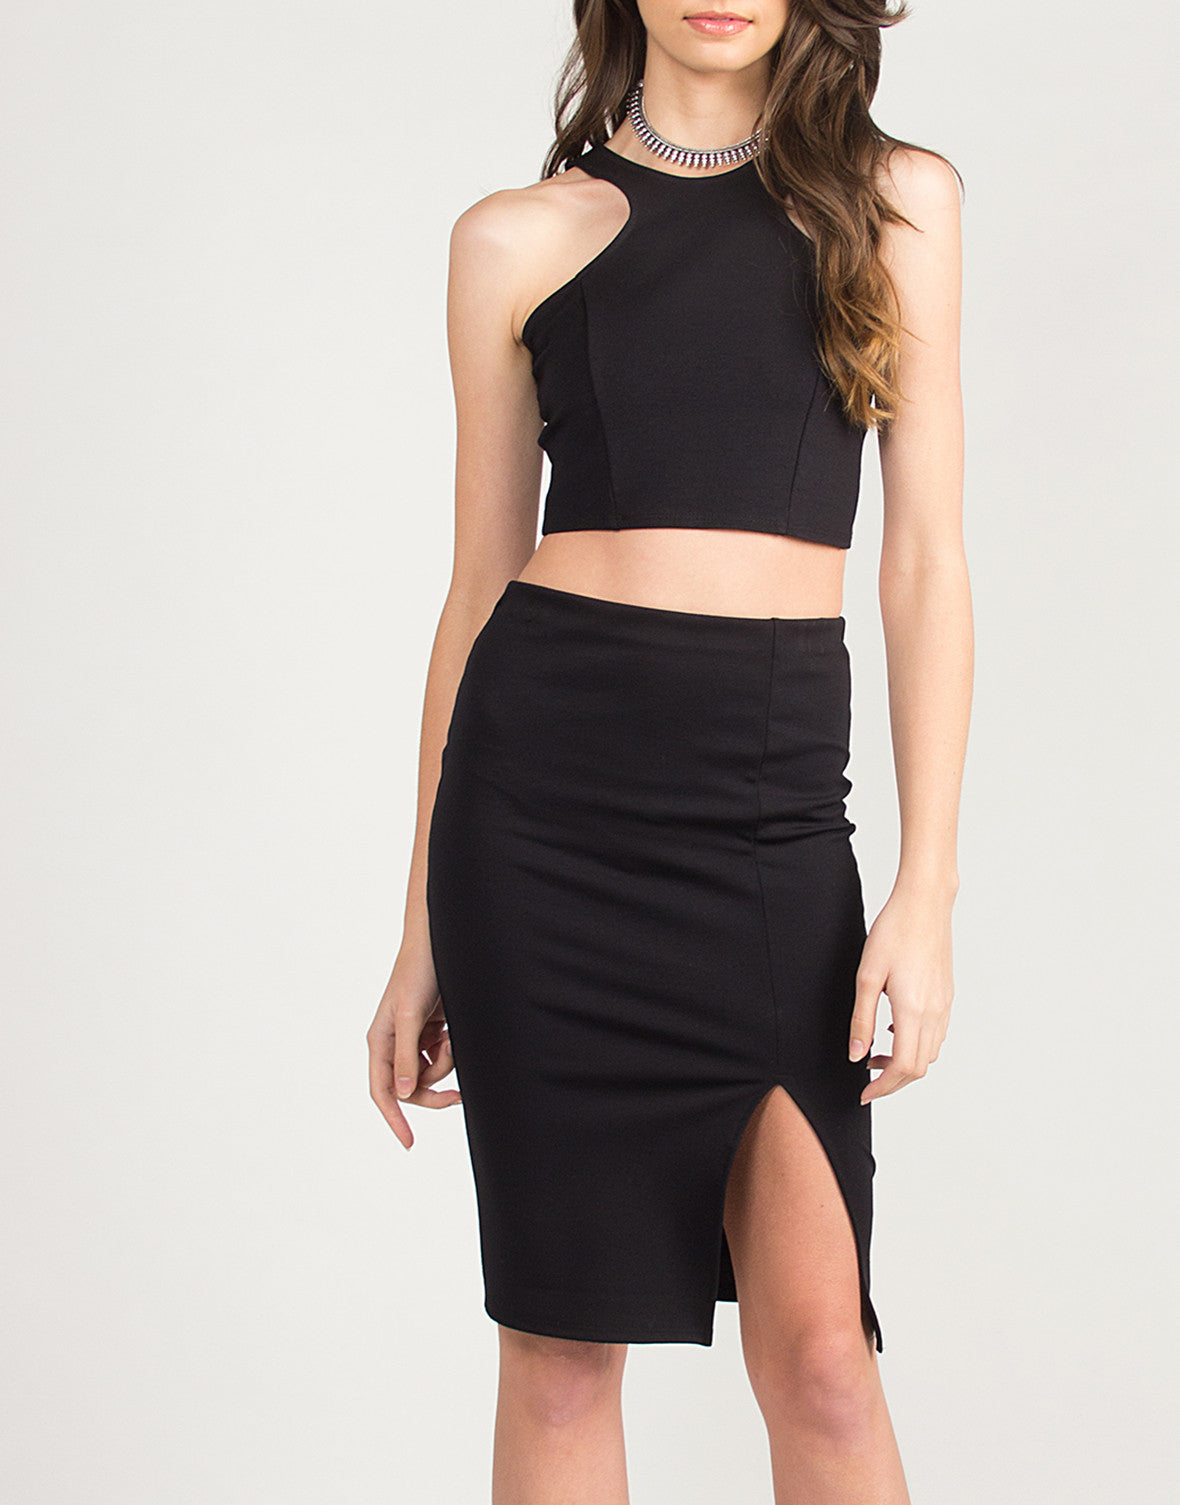 Side Slit Body Con Pencil Skirt - Black